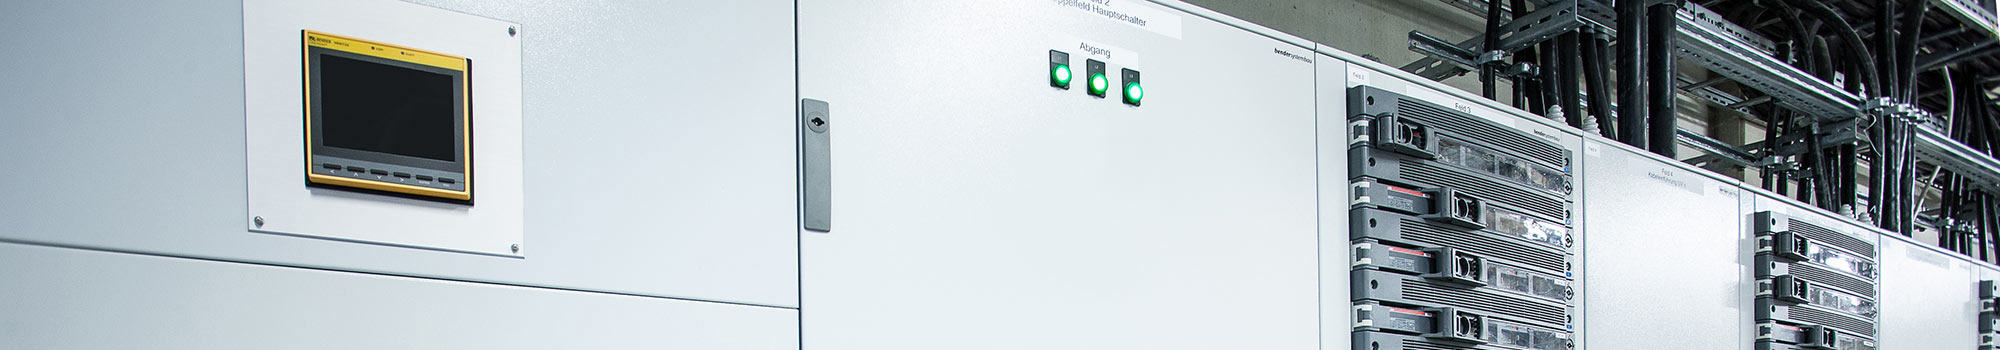 Switching main distribution boards in hospitals reliably